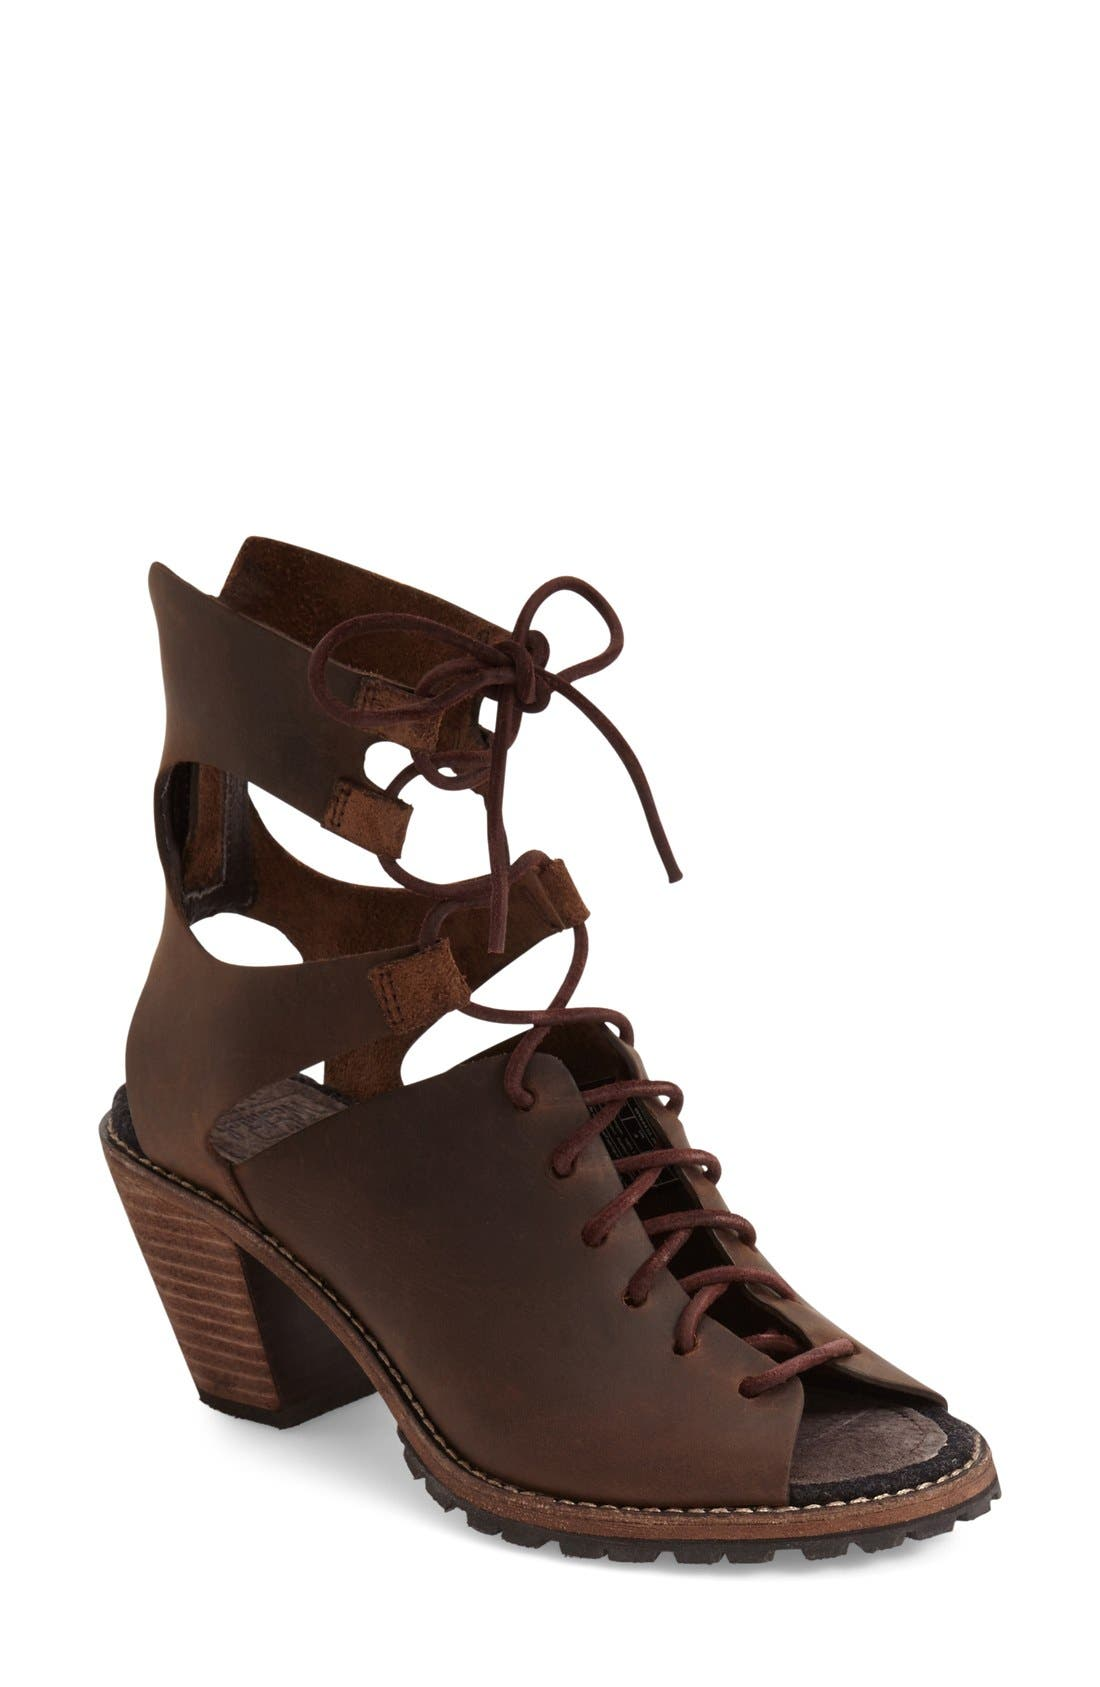 'Mohave Arroyo' Lace-Up Boot,                         Main,                         color, Bitter Chocolate Leather